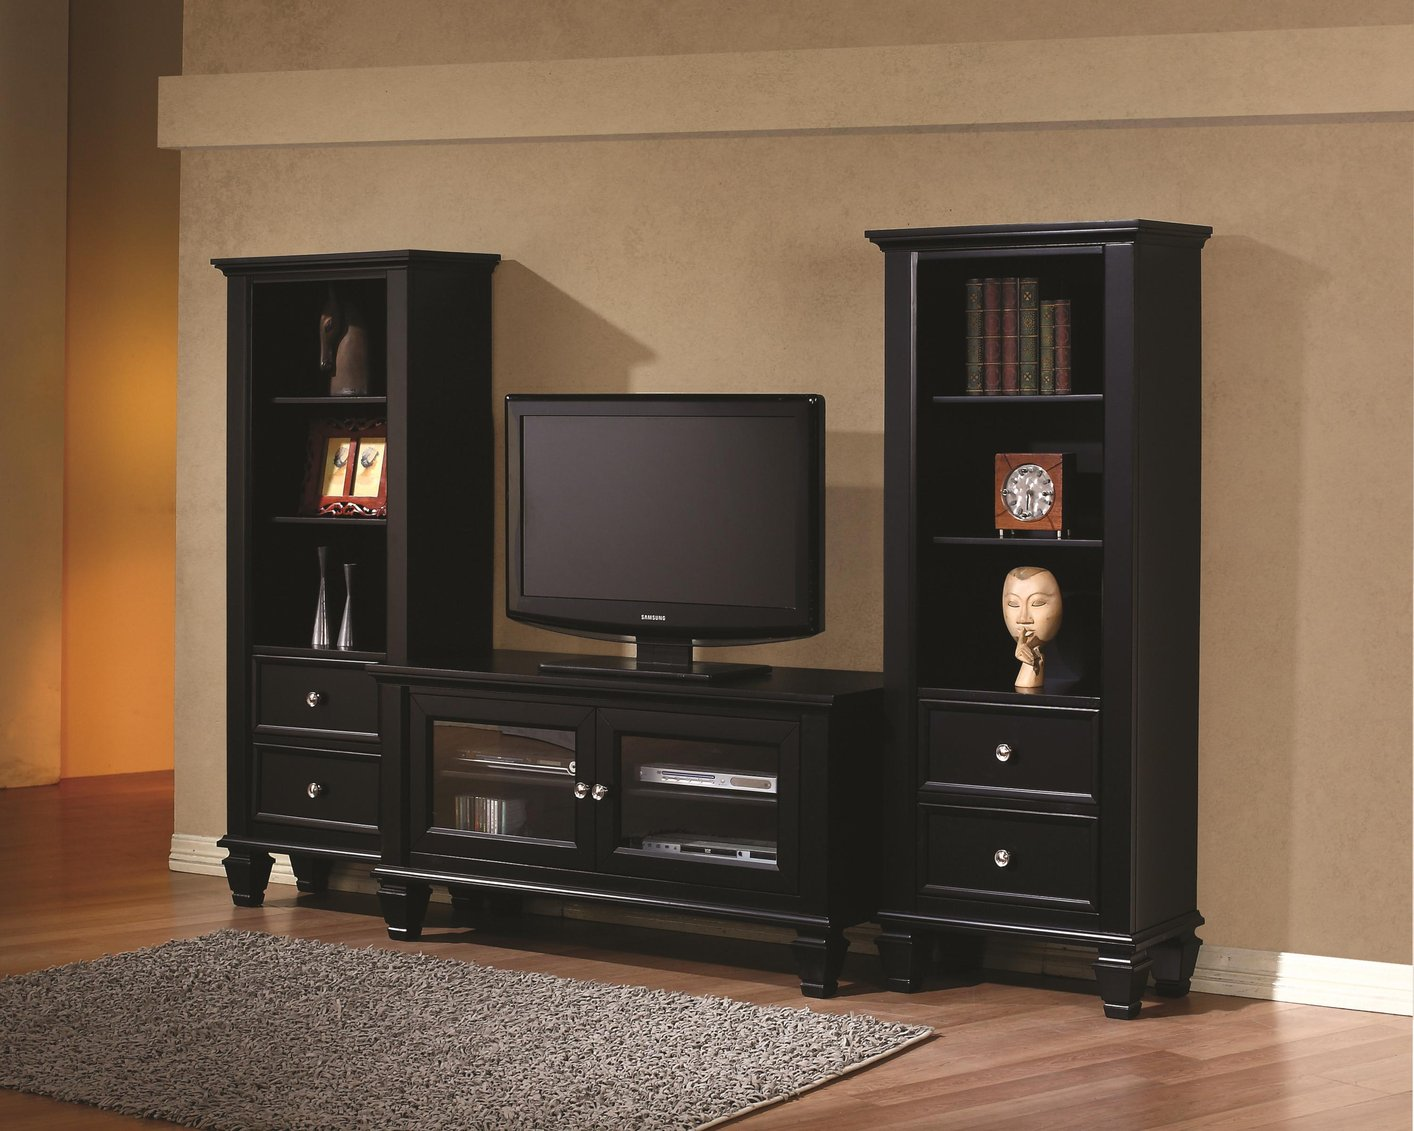 Coaster 702251 Black Wood TV Stand